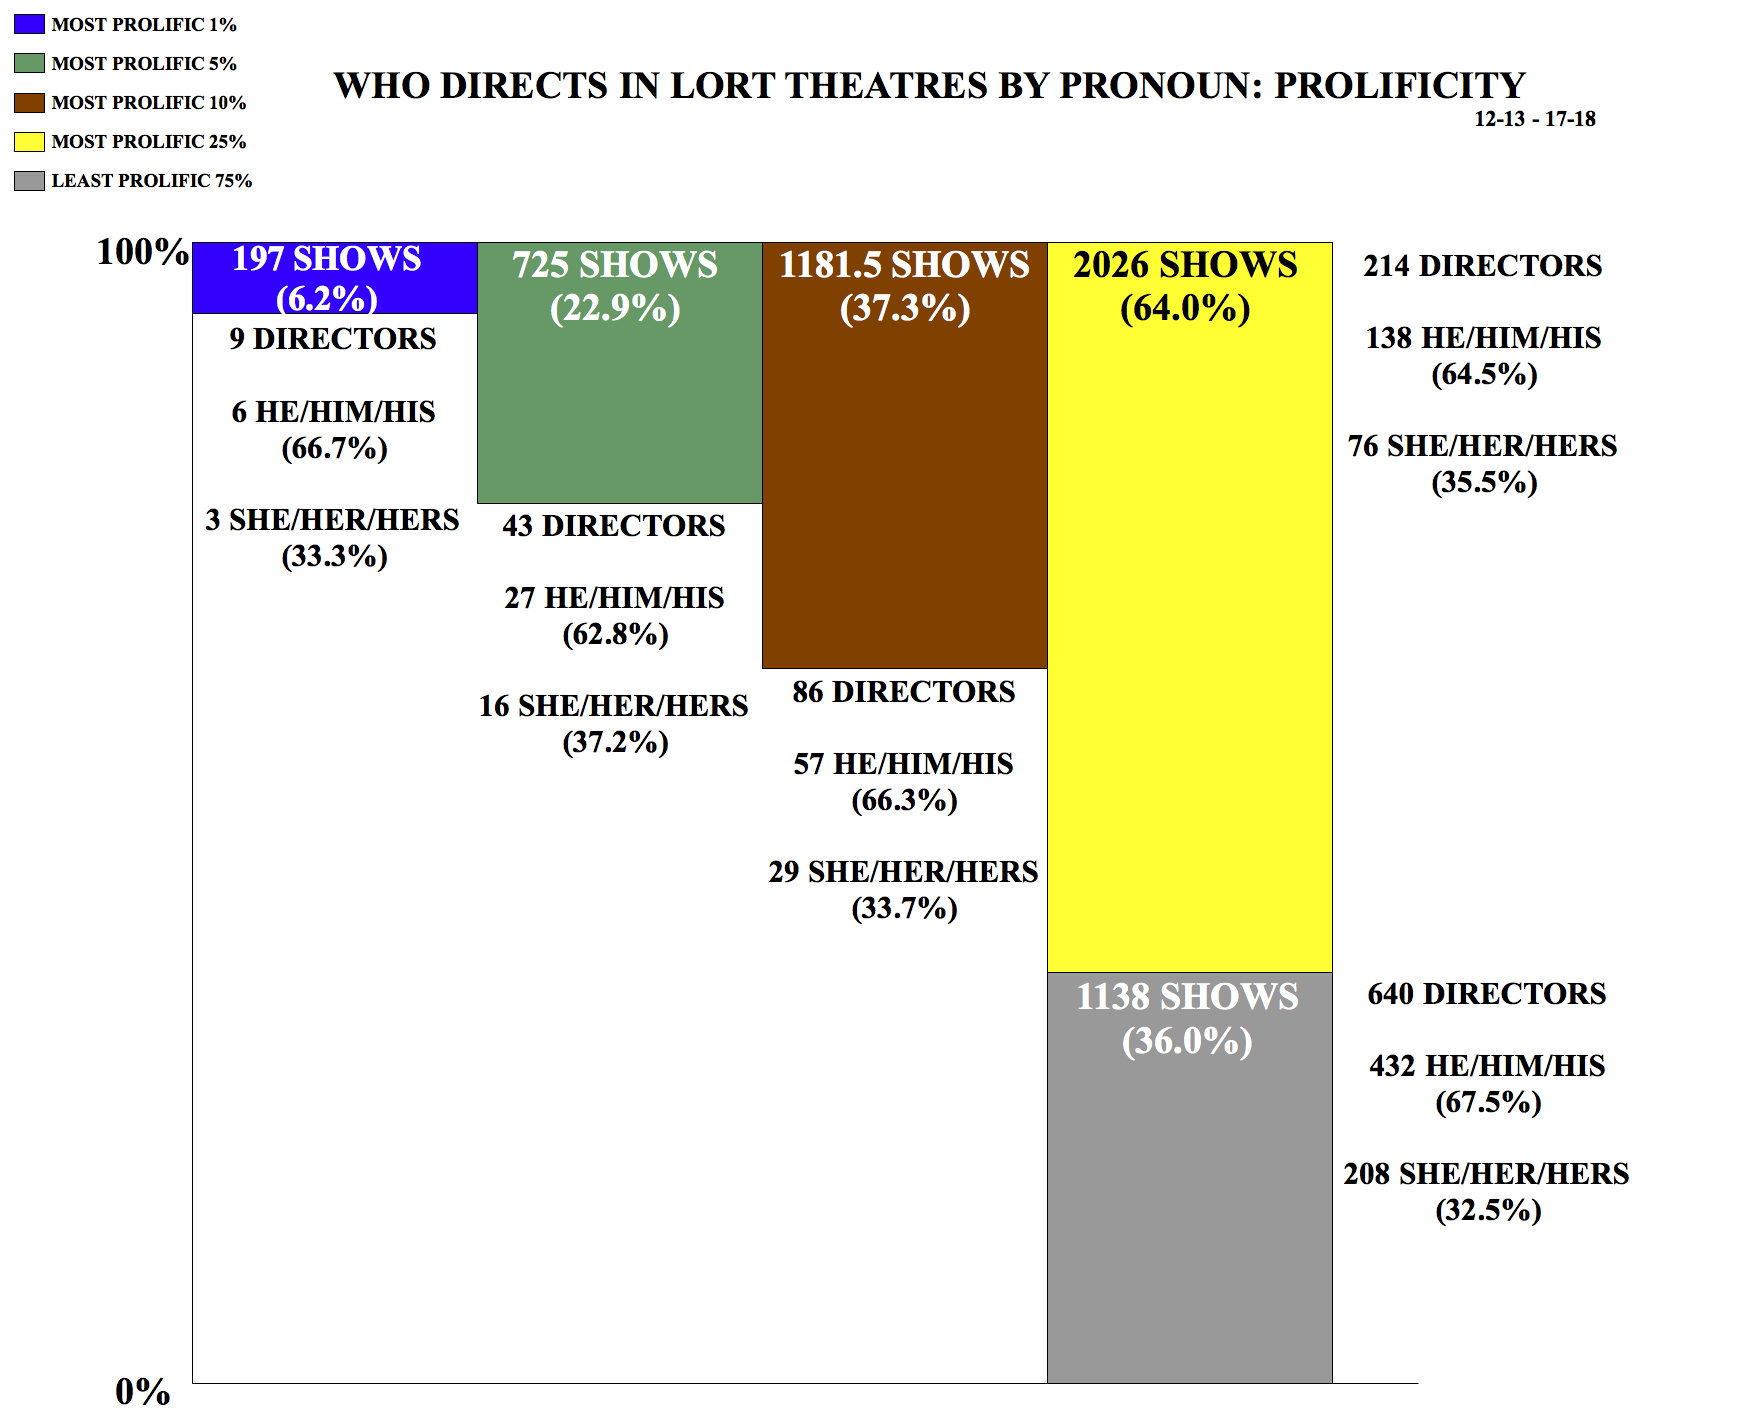 Who Directs in LORT Theatres by Pronoun: Prolificity